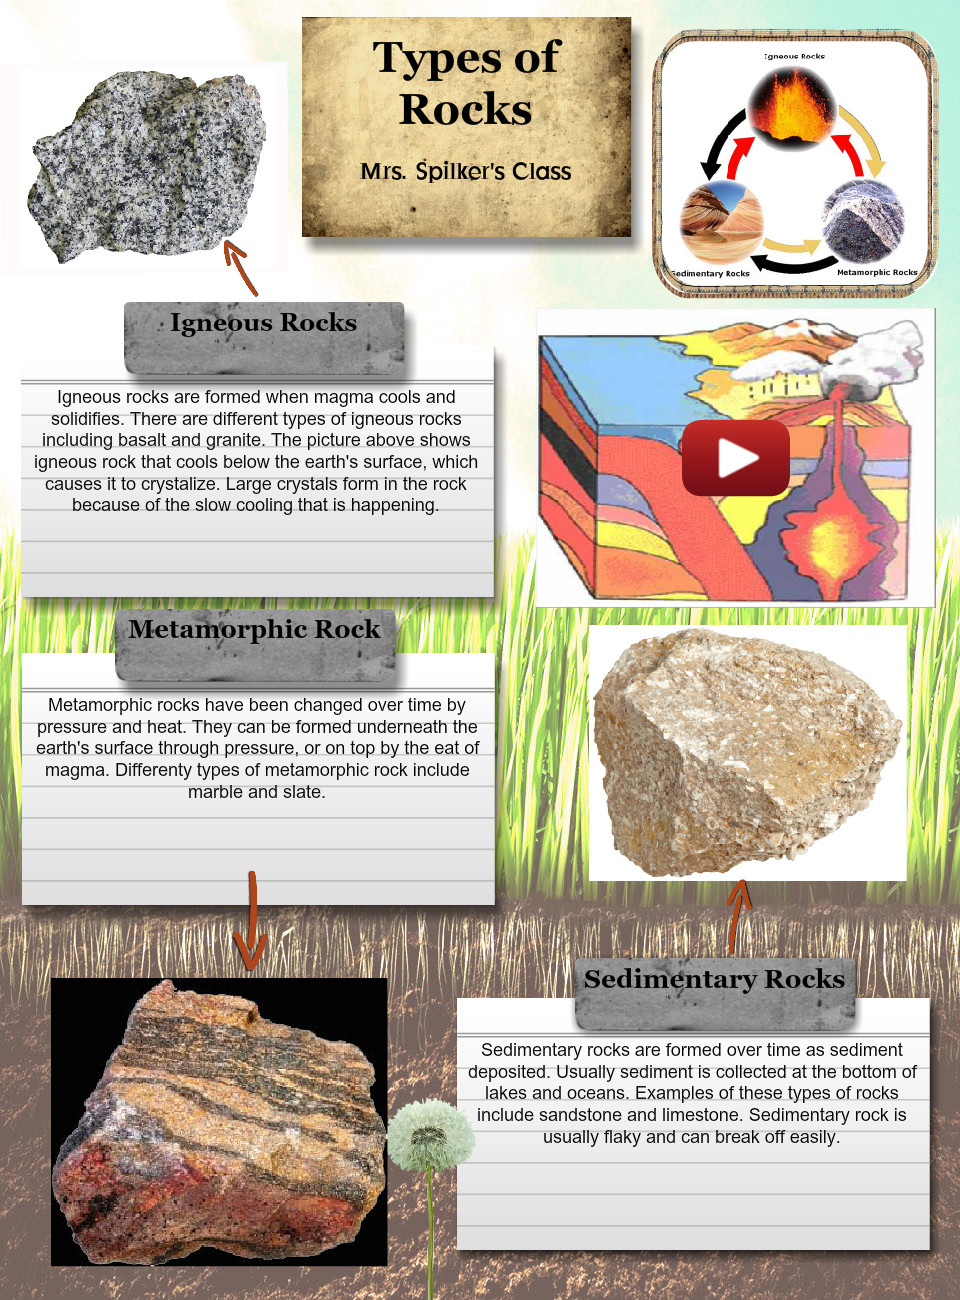 Types of Rocks